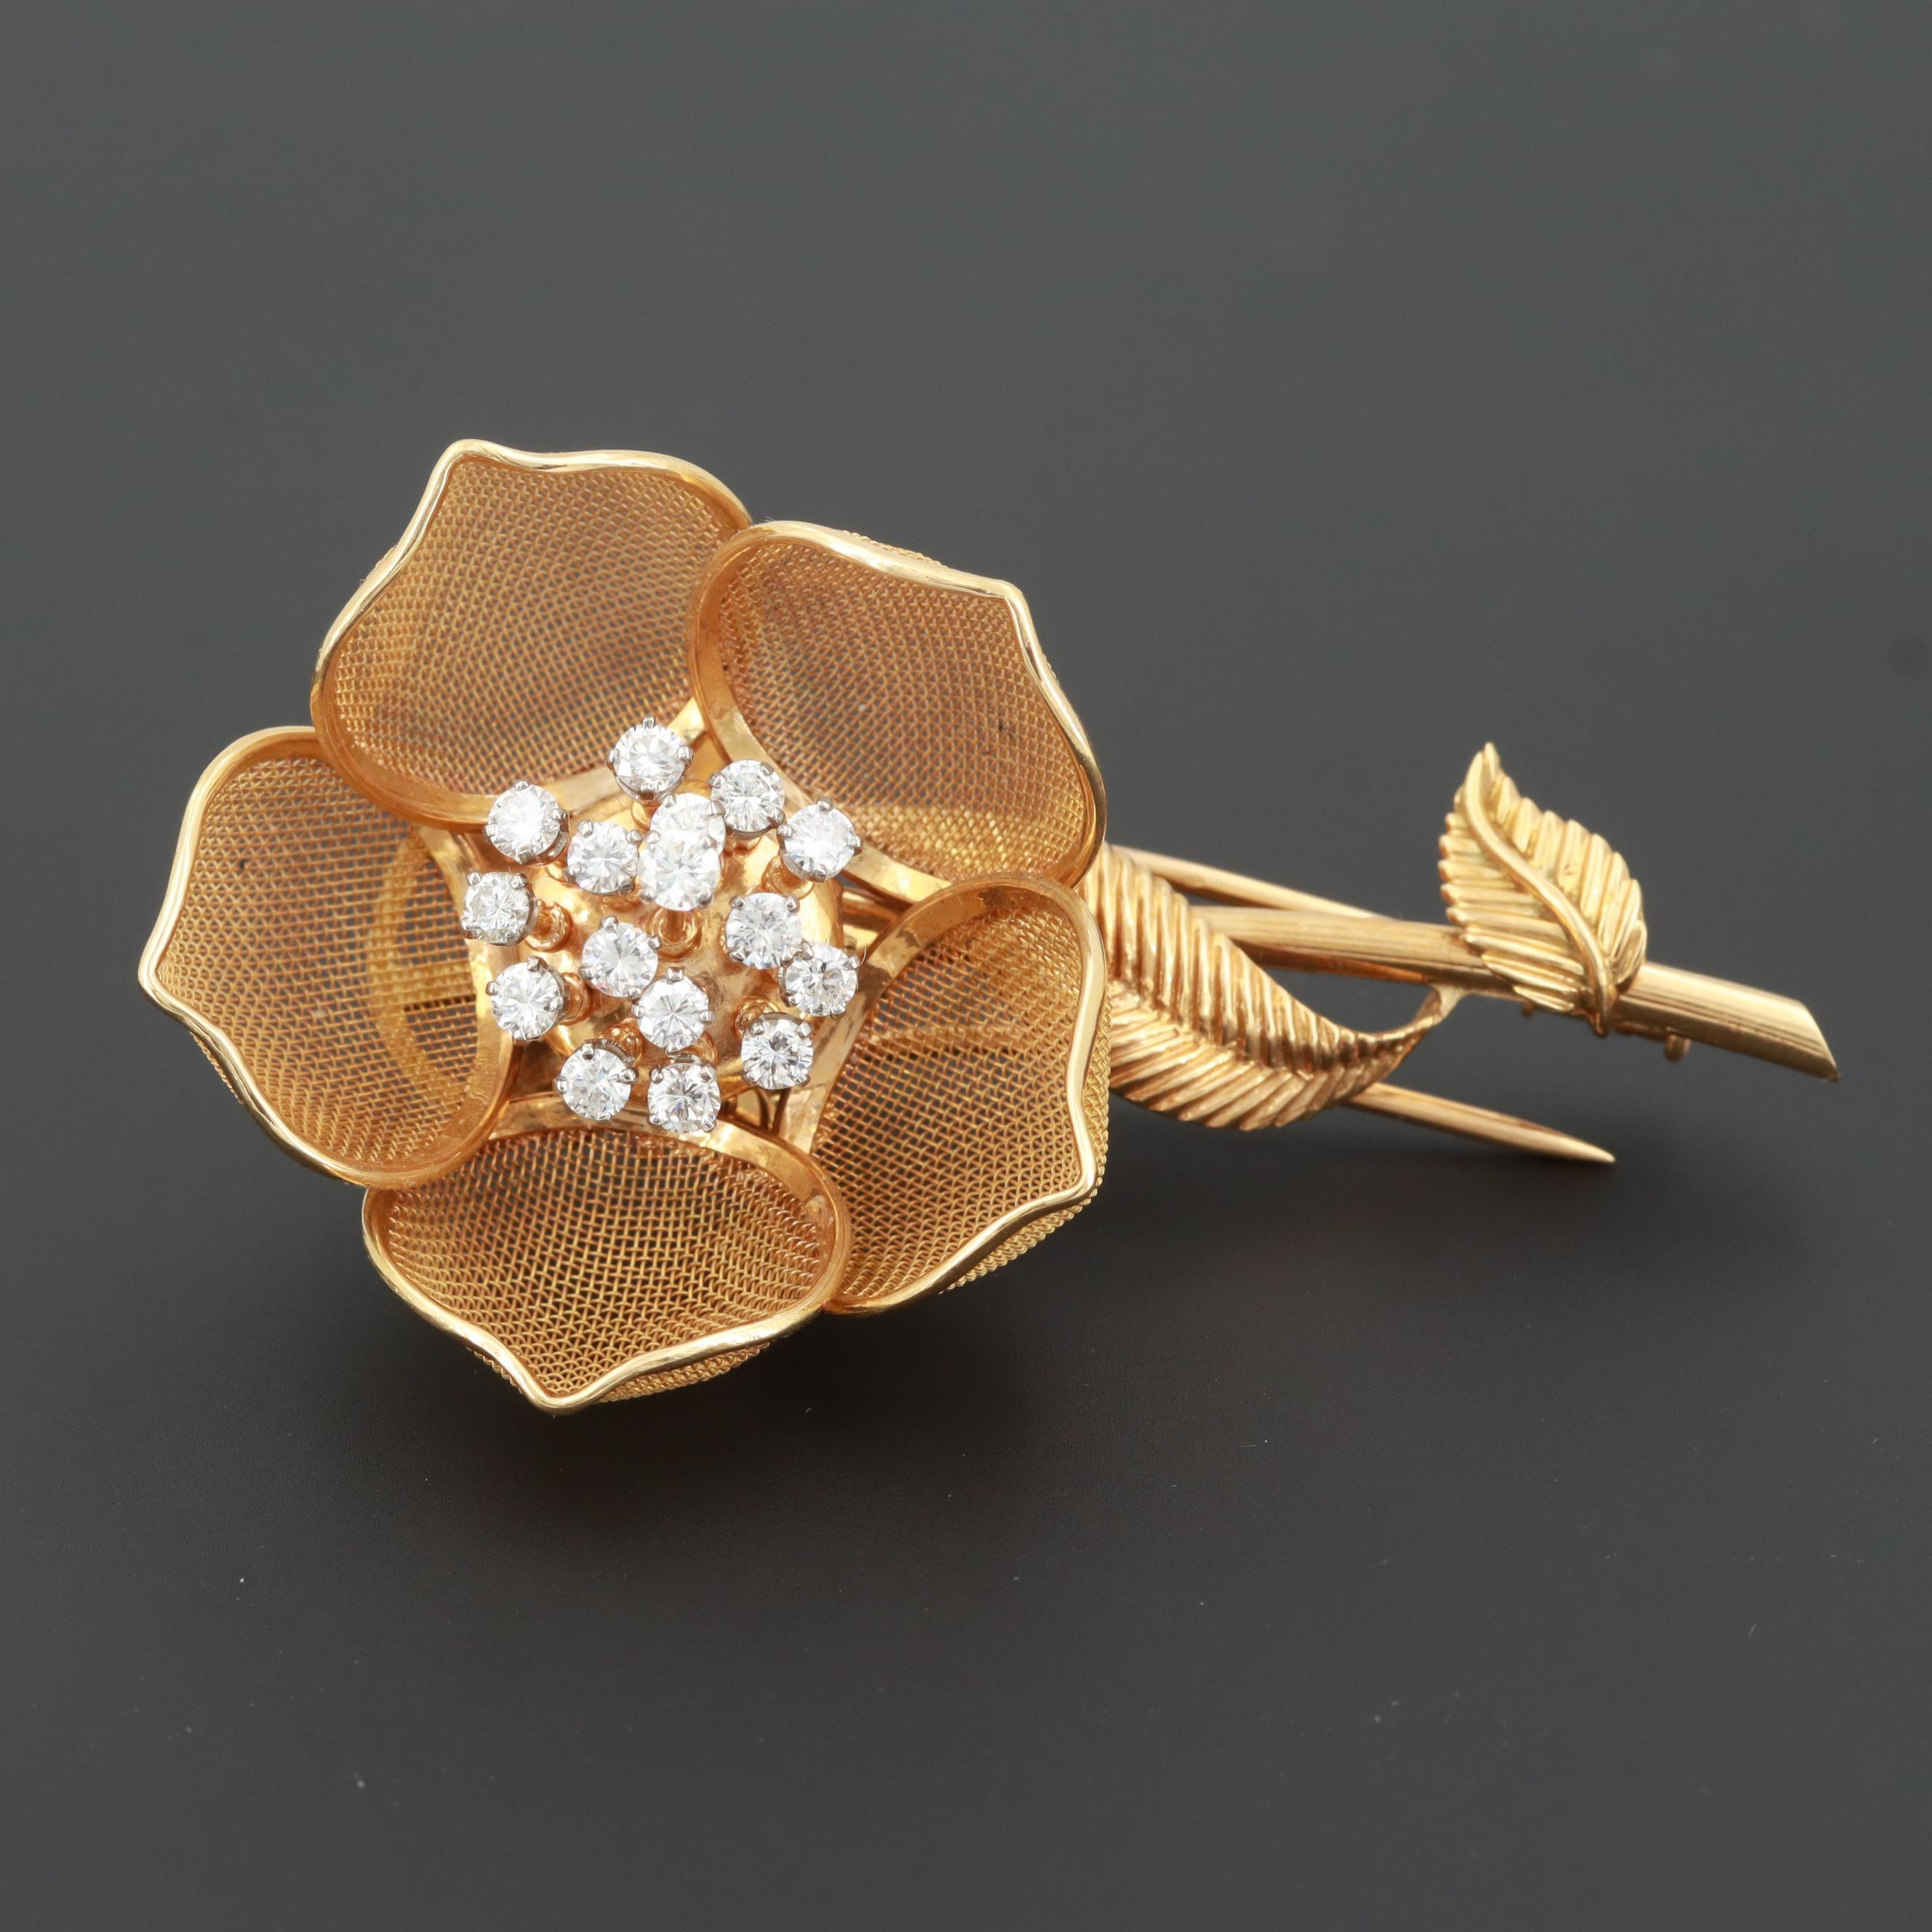 Circa 1970s French 18K Gold 1.03 CTW Diamond Articulating Flower Fur Brooch